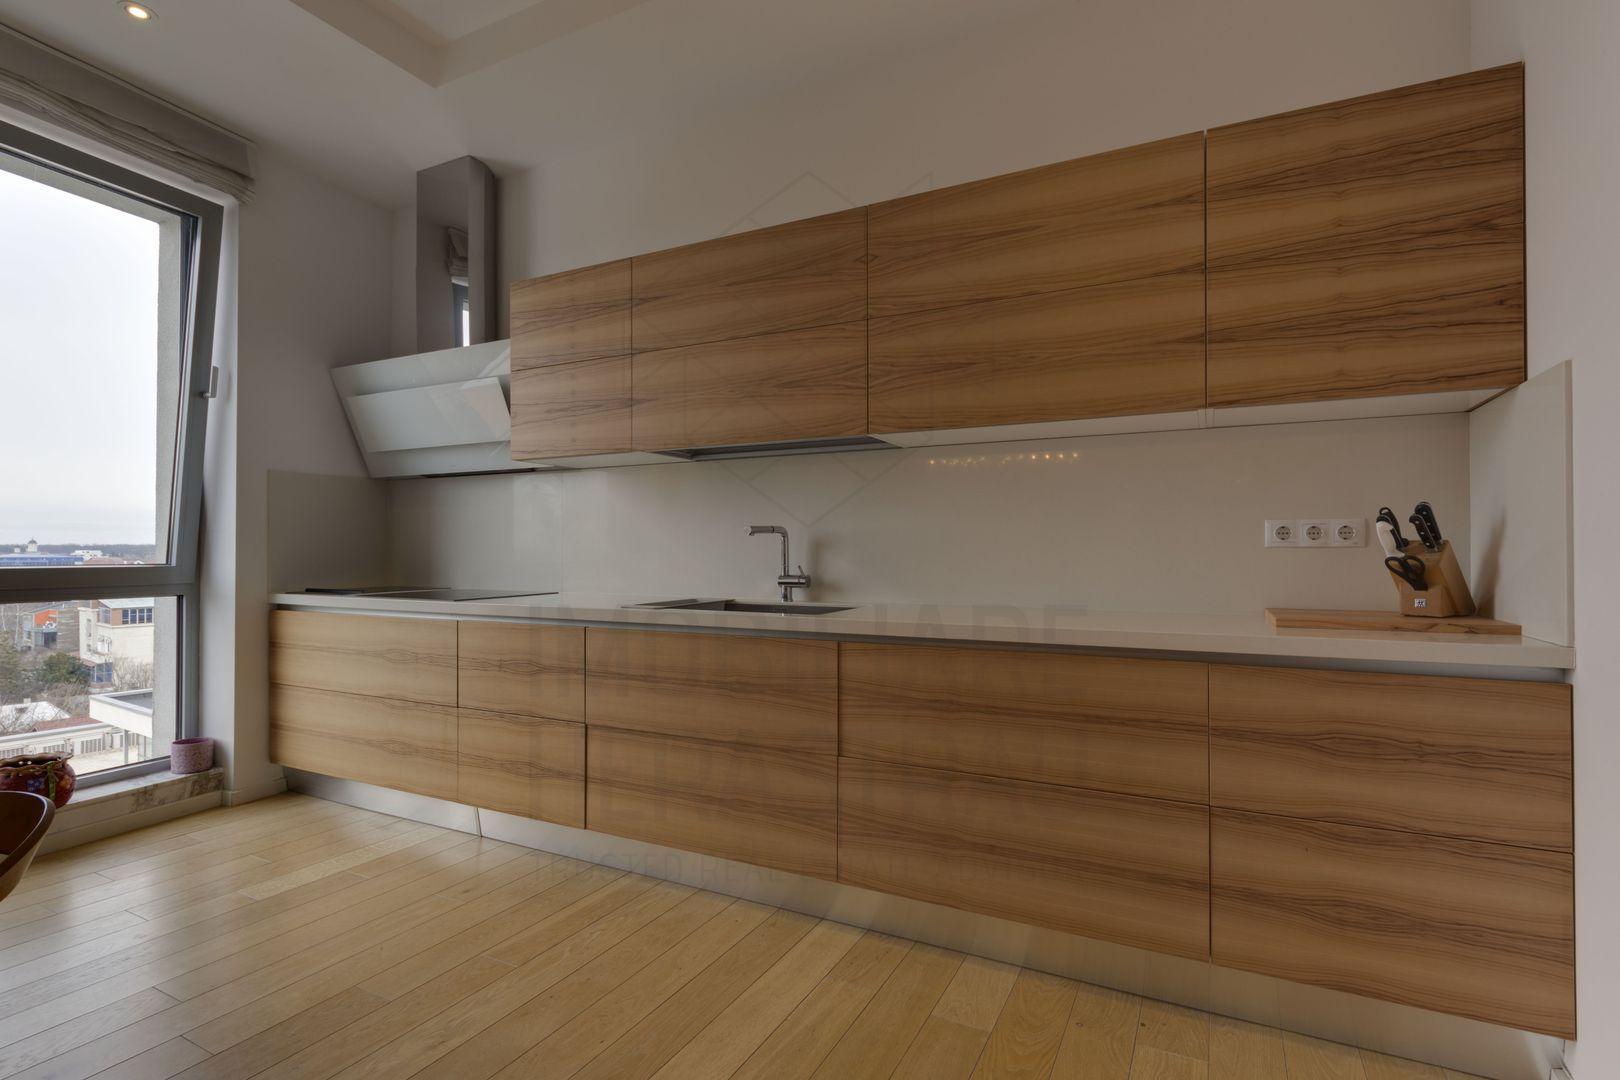 Nasara Residence   4 room Penthouse apartment for sale, Baneasa area